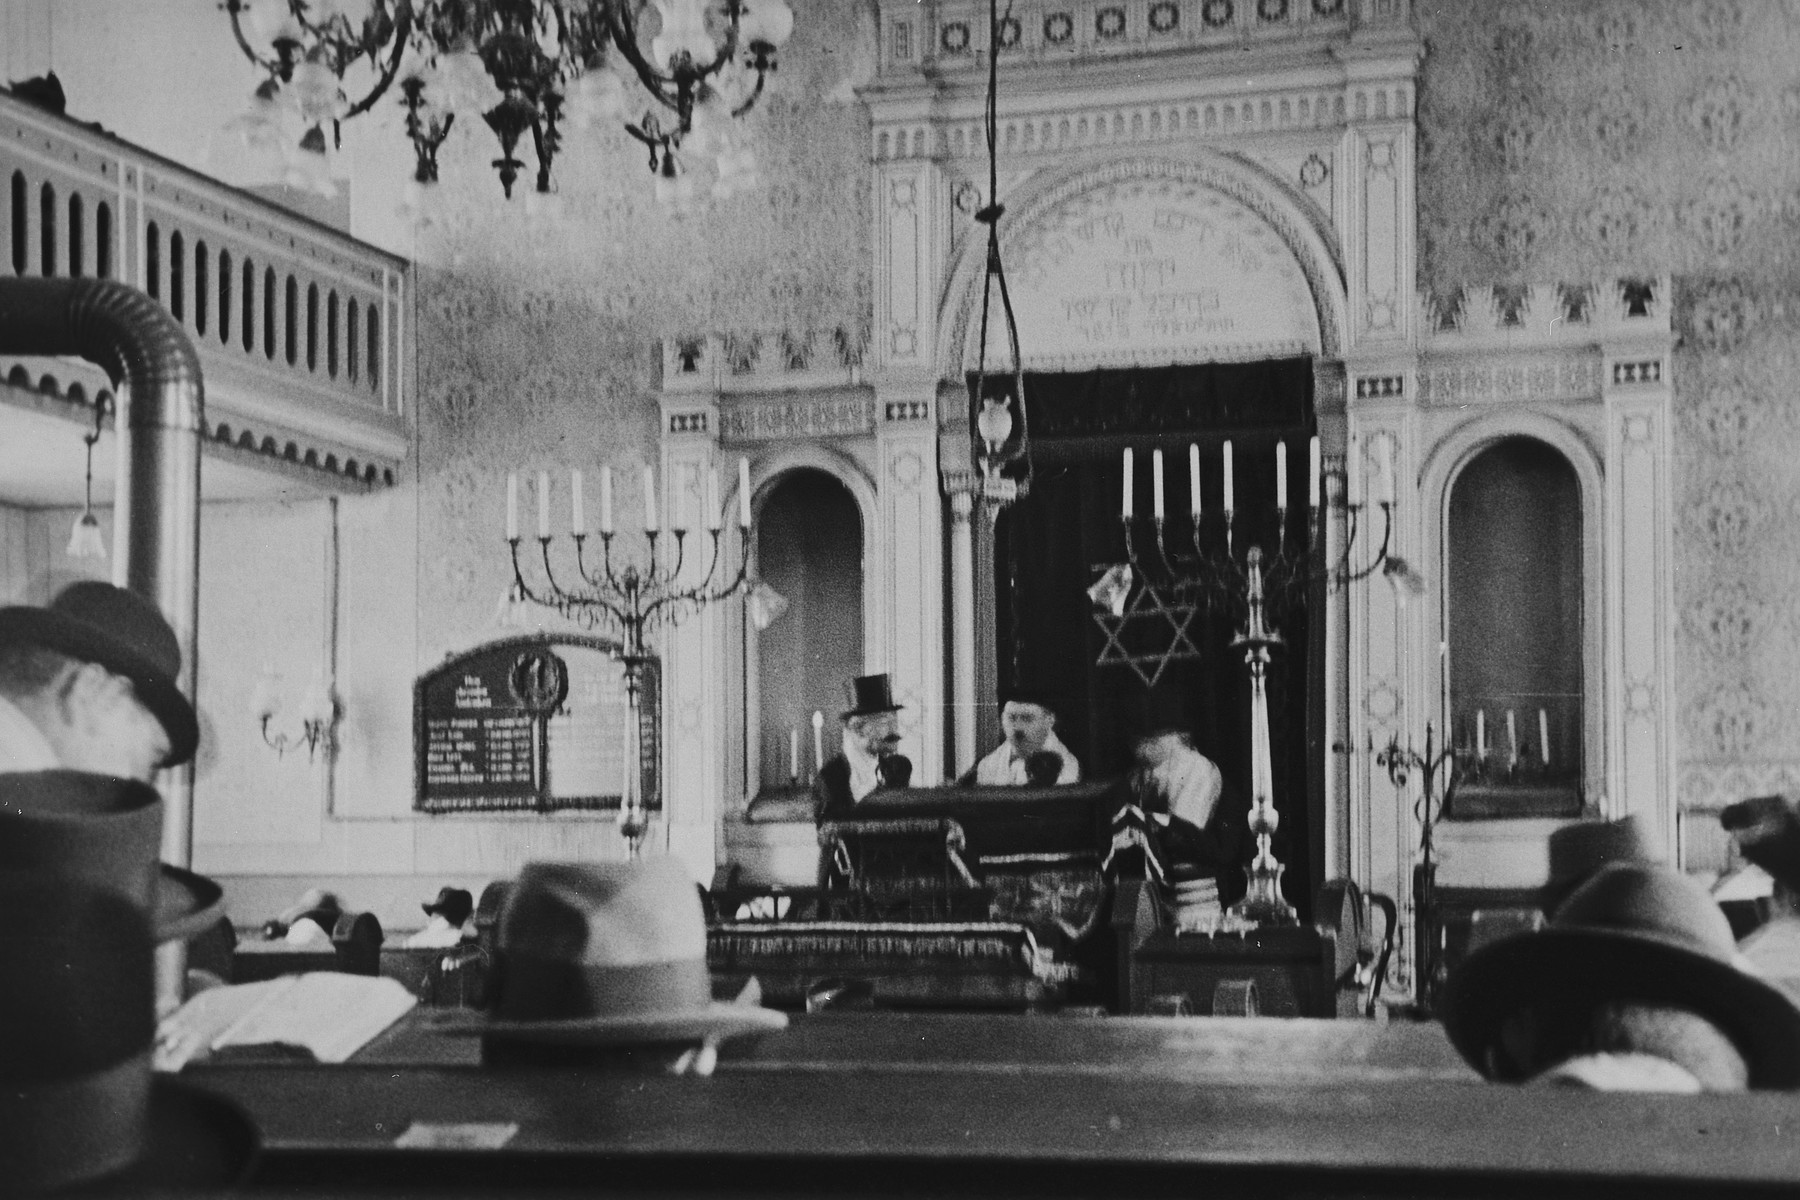 German Jews gather for Sabbath morning prayers in the synagogue in Breisach.  Cantor Michael Eisemann is leading the services.  To his left is Siegfried Weil.  (Though it is normally forbidden to photograph Sabbath services, an exception was made for the purpose of documenting the community.)  This is part of series of photographs taken of the Breisach Jewish community 1937.  In October 1940 the entire community was deported to the Gurs internment camp in southern France.